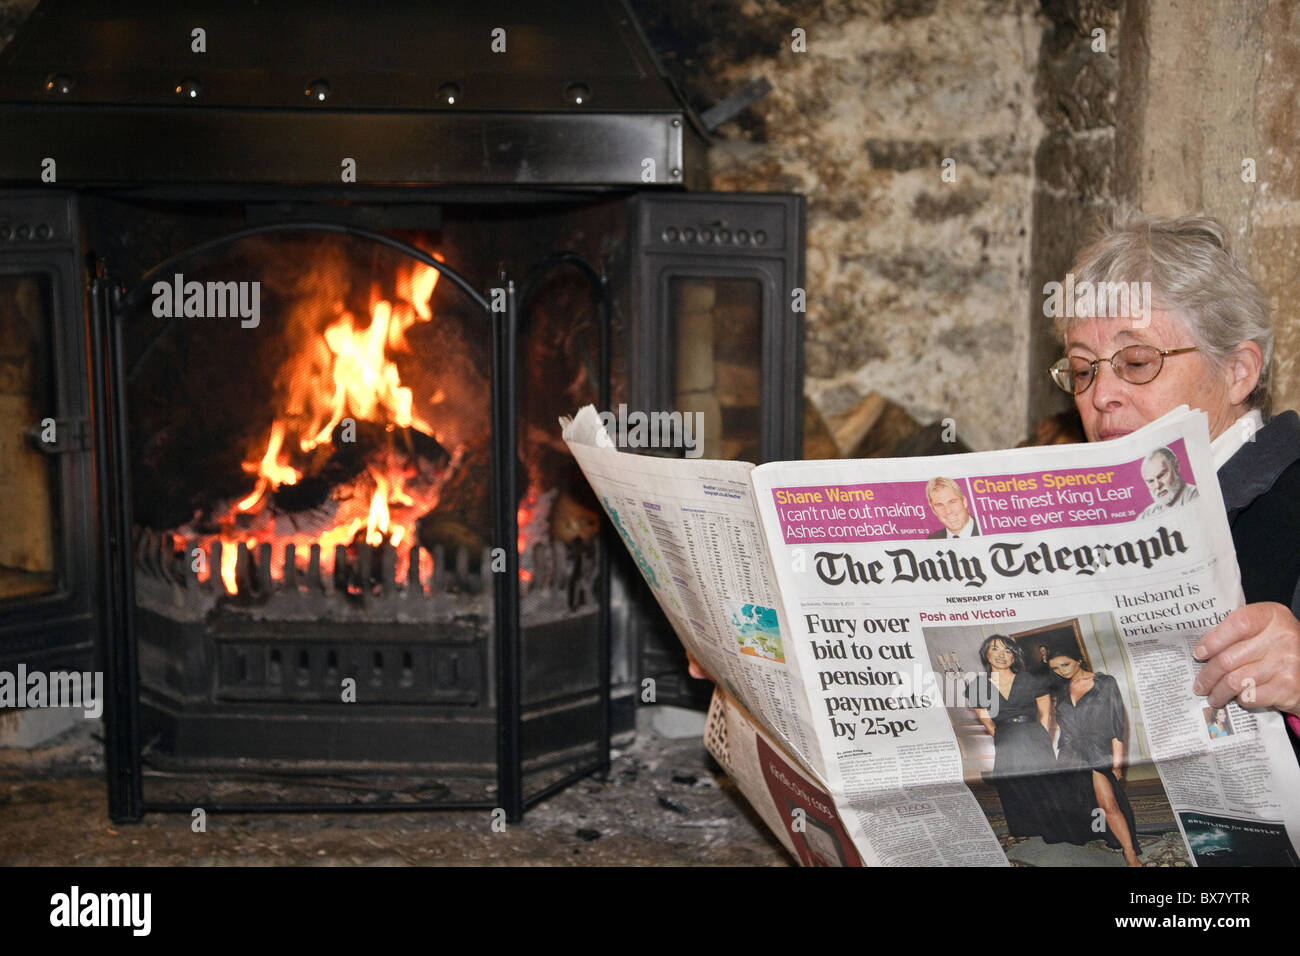 Senior woman pensioner retiree reading a Daily Telegraph broadsheet newspaper reporting pension cuts by an open - Stock Image